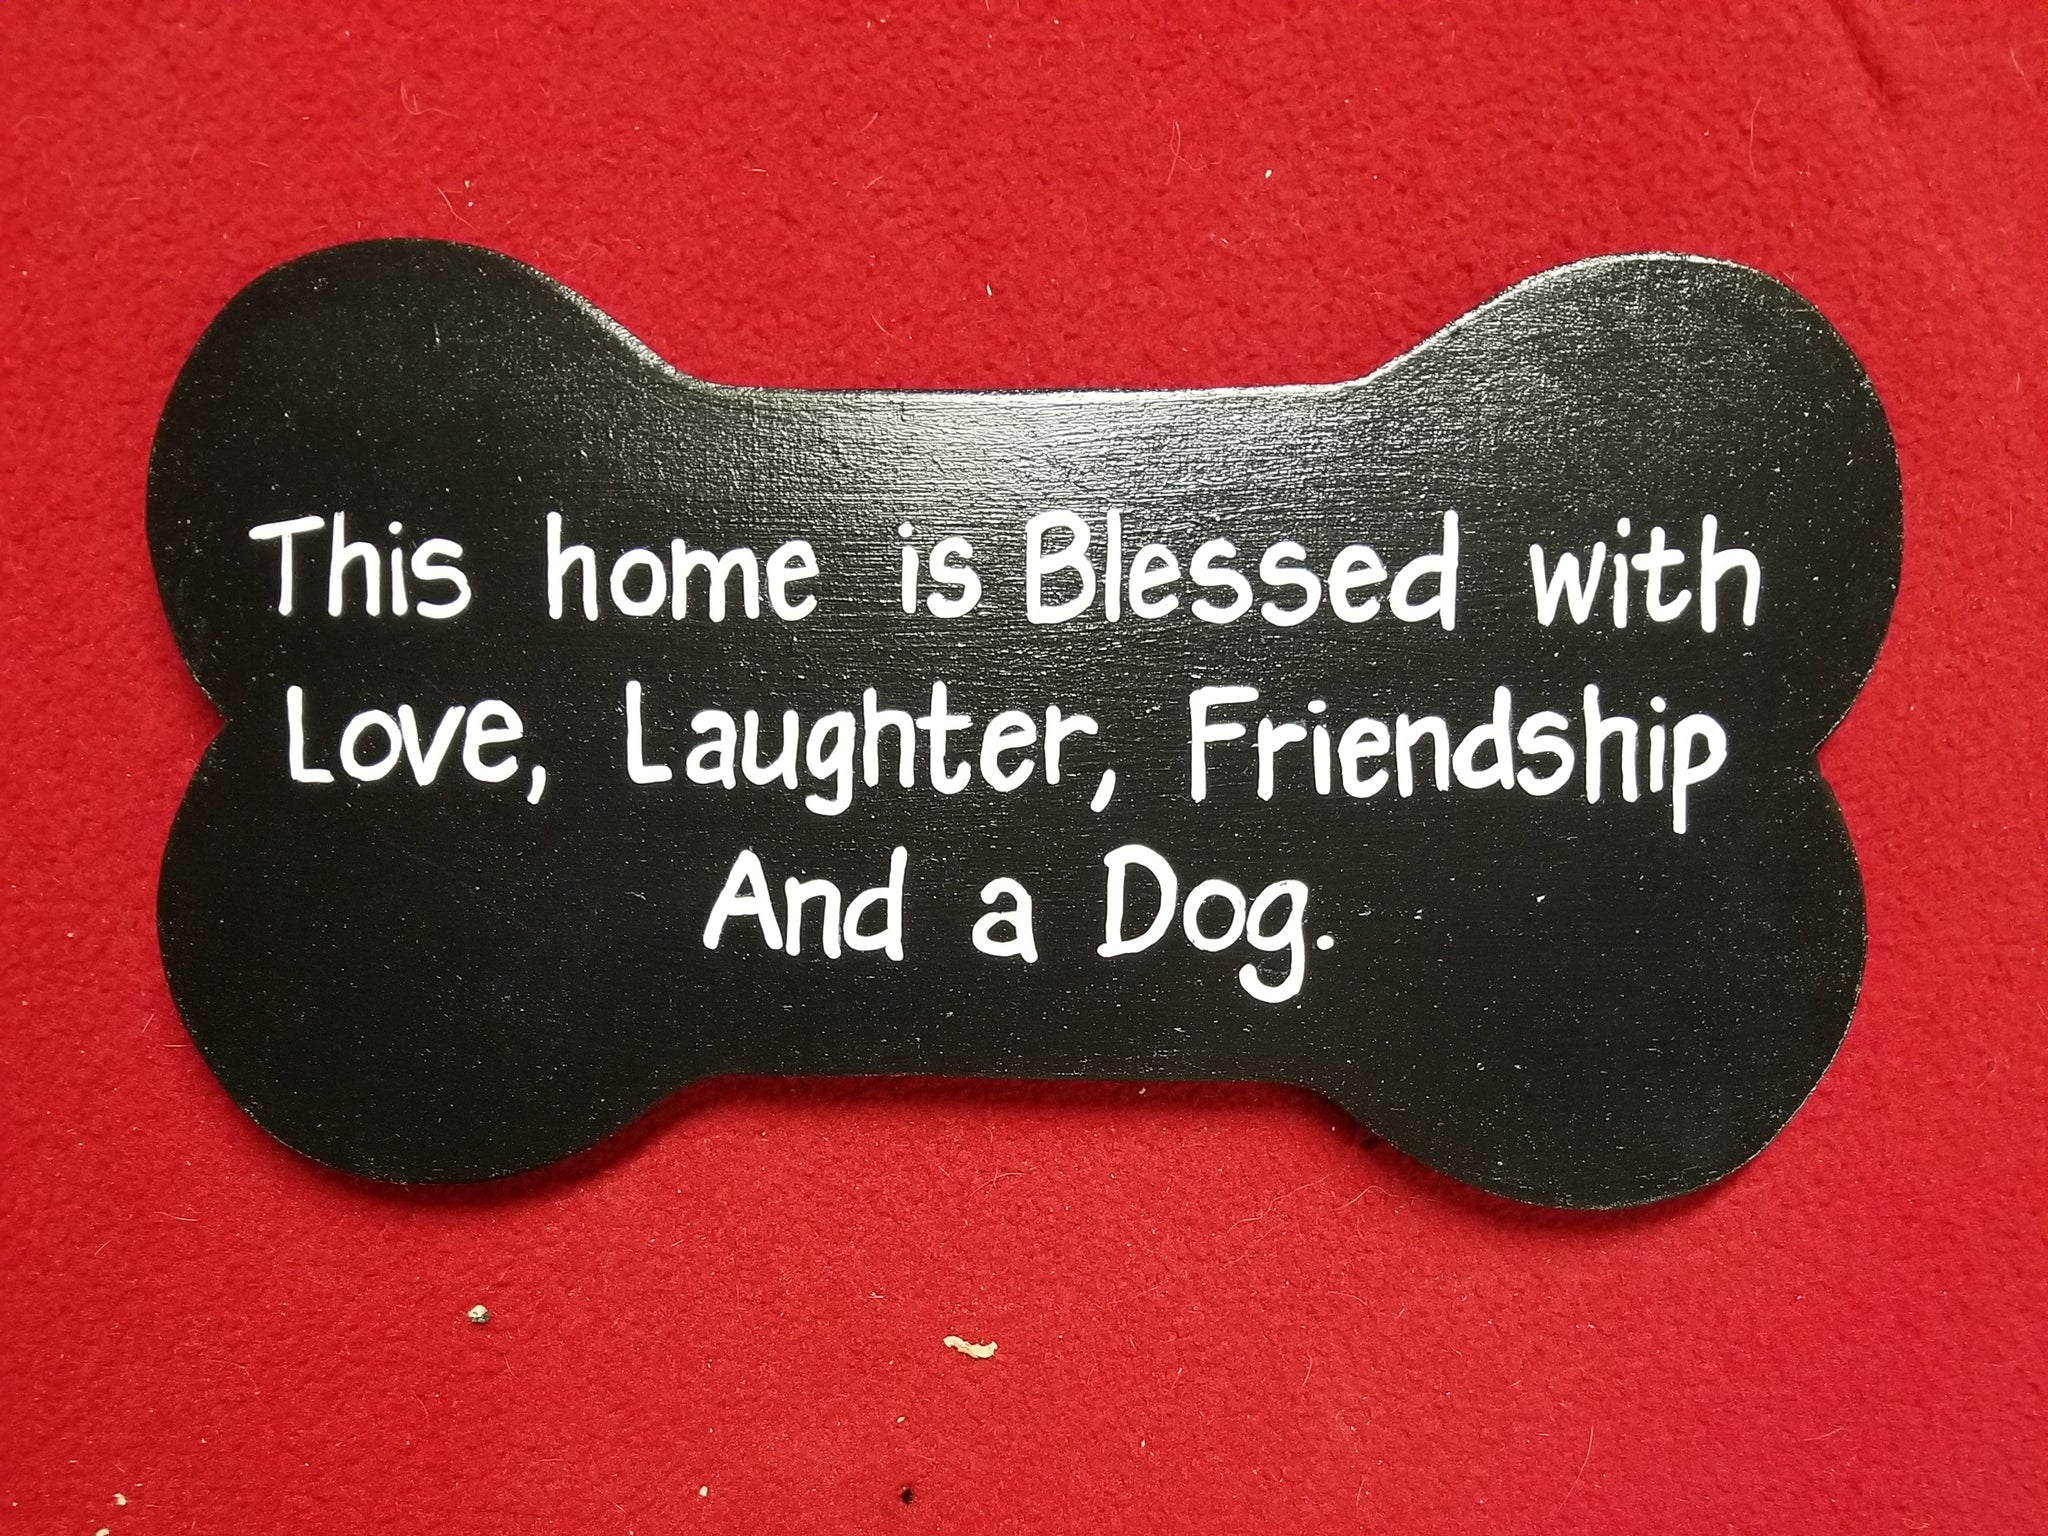 This Home is Blessed with Love, Laughter, Friendship and a Dog